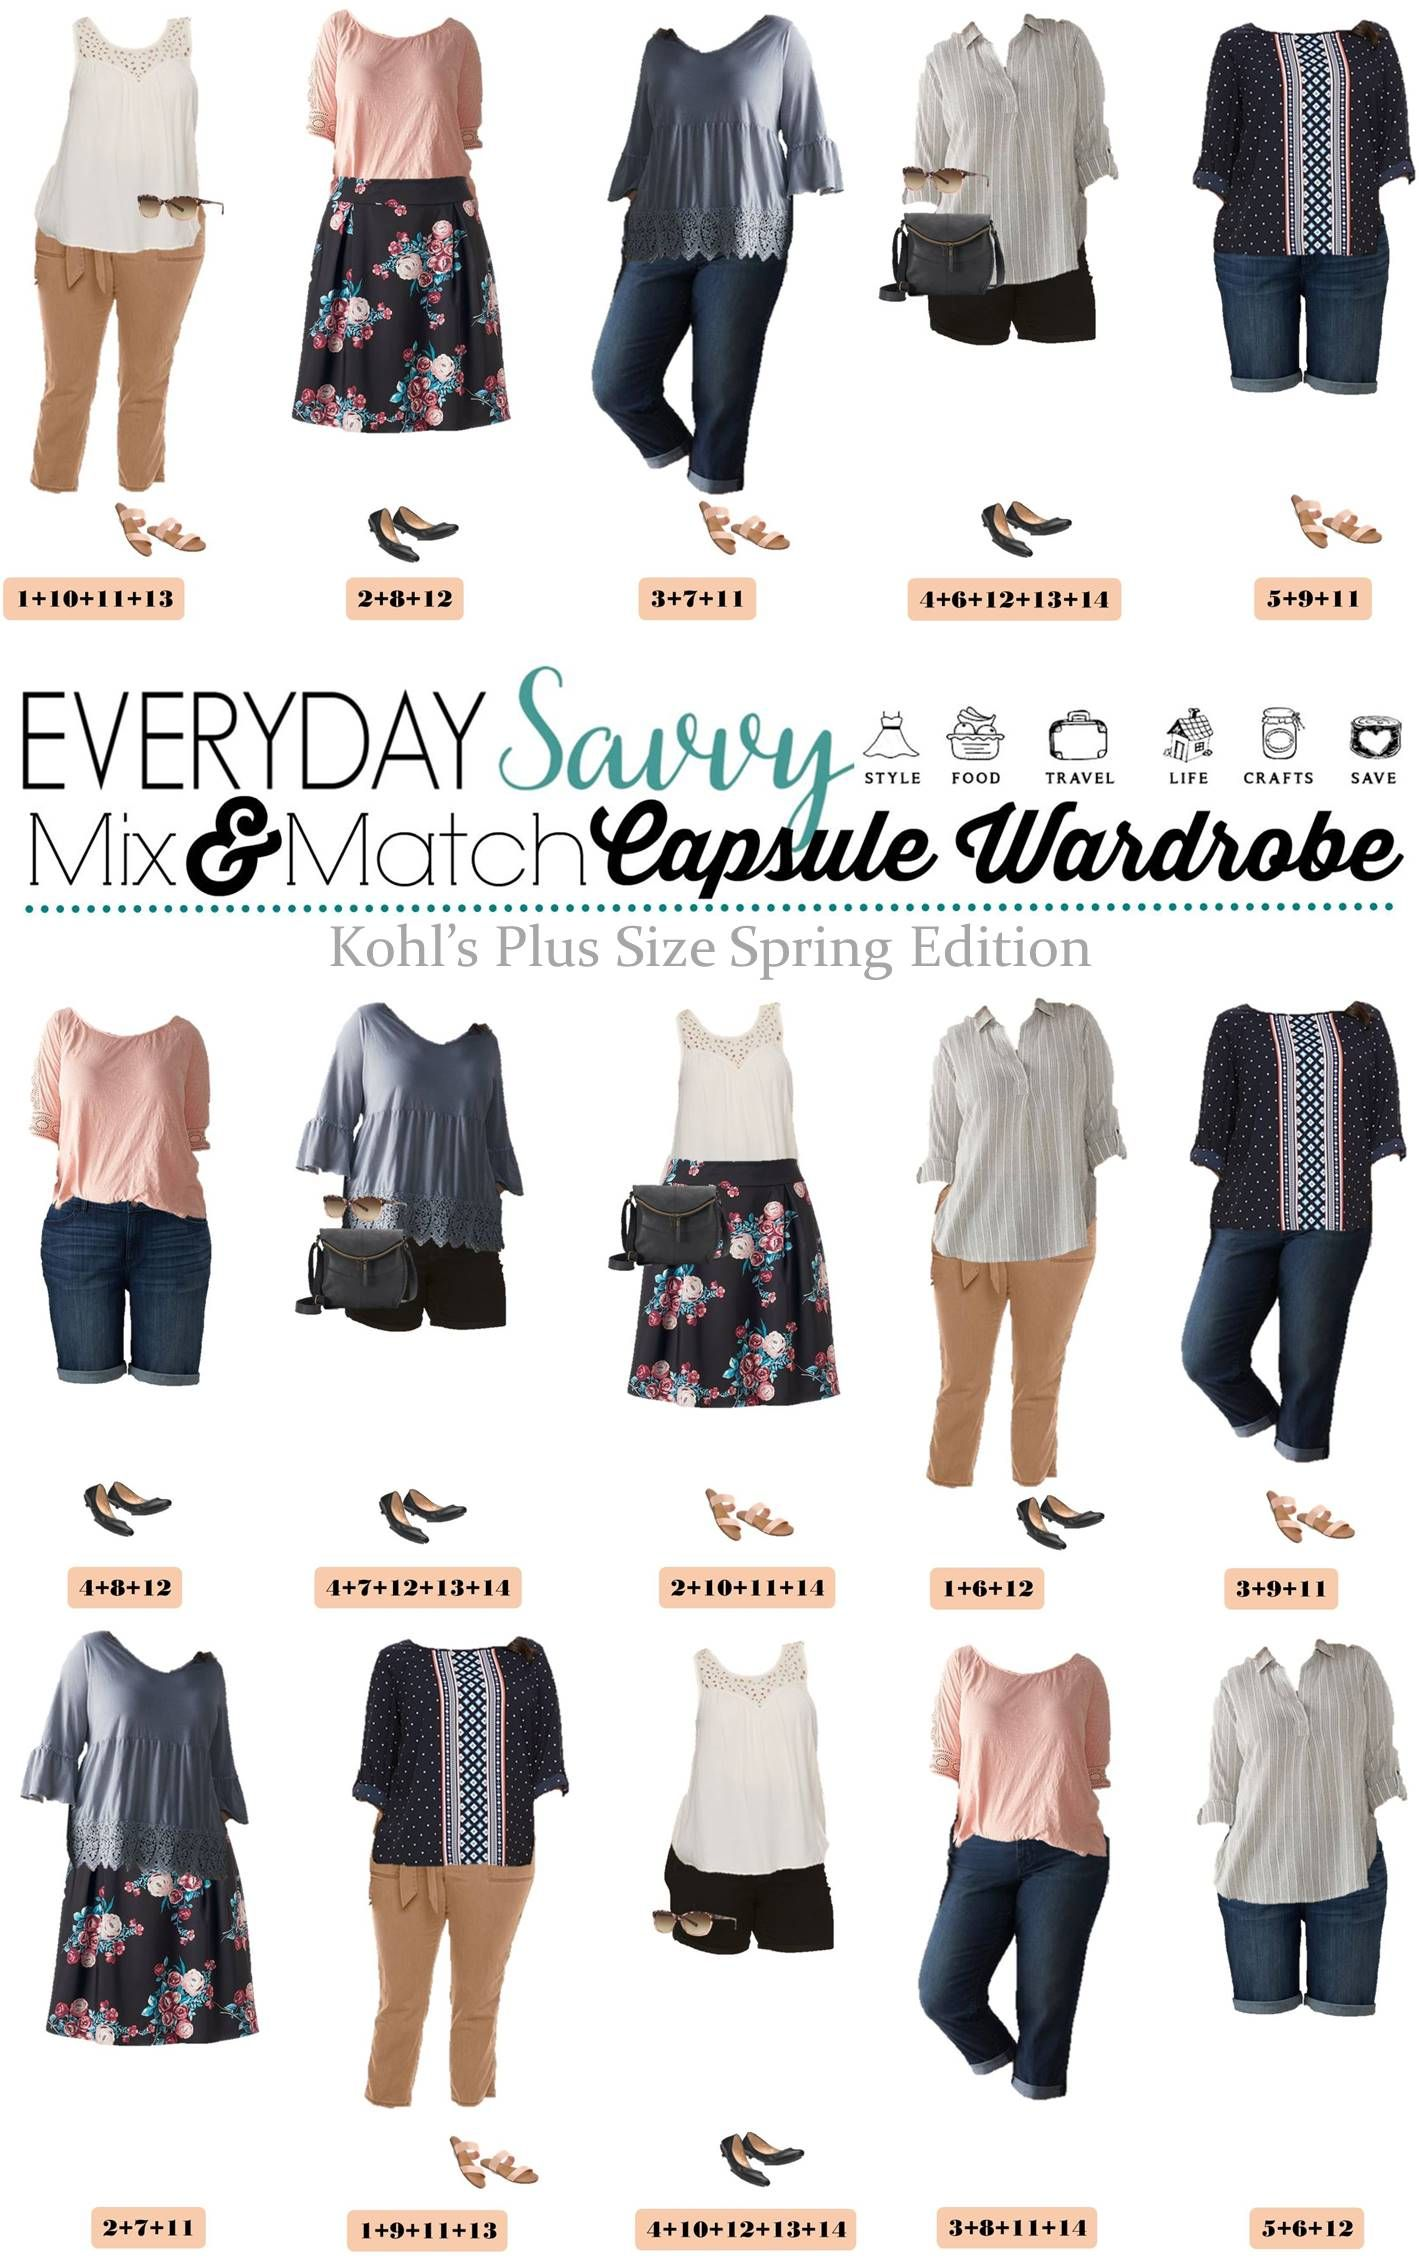 Check out these cute and affordable plus size spring outfit ideas from  Kohls. These pieces 15 and match for 15 outfits for spring. via  @everydaysavvy